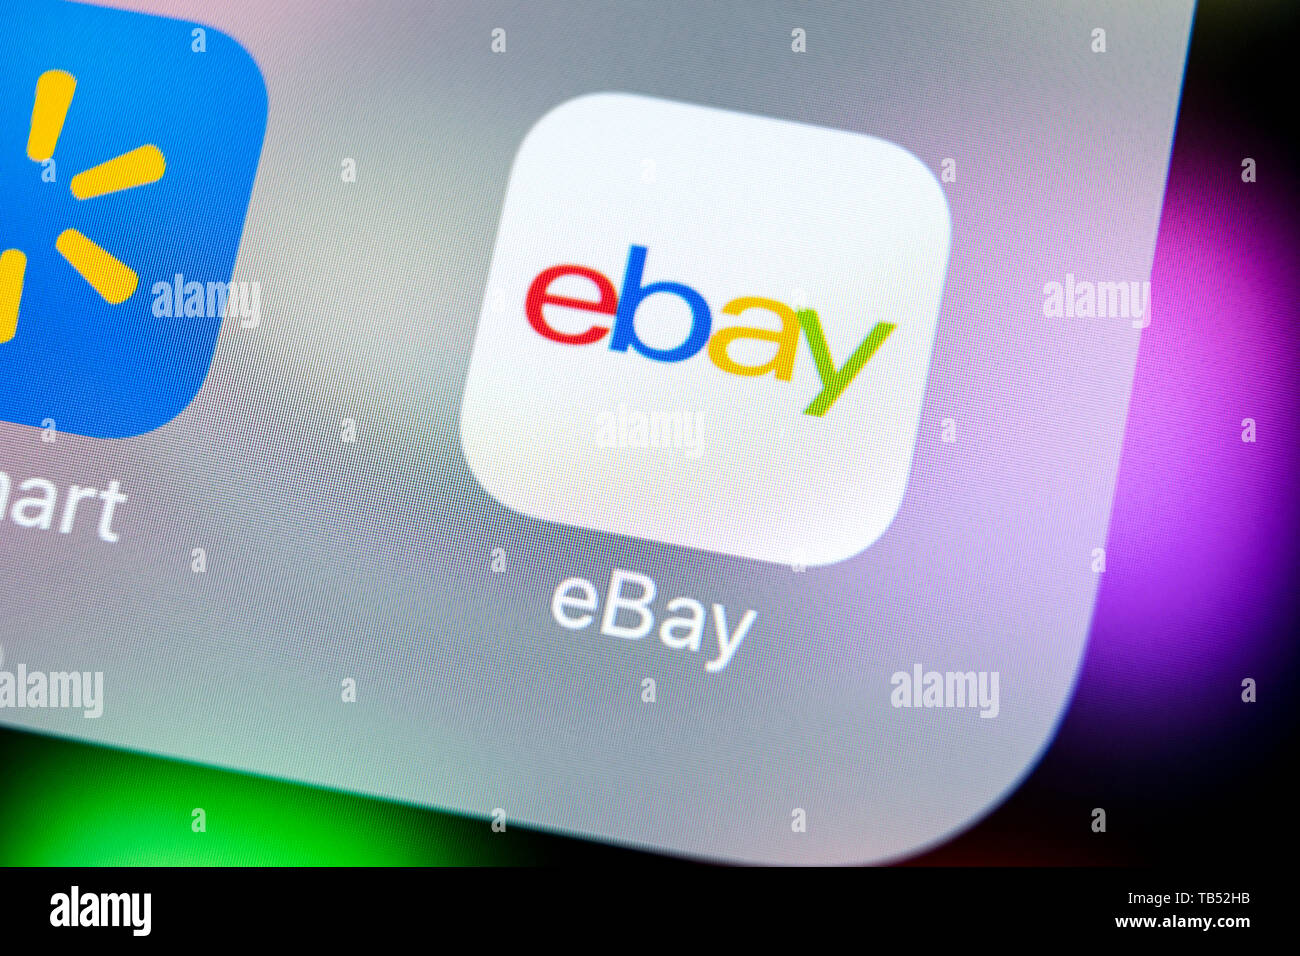 Sankt Petersburg Russia March 21 2018 Ebay Application Icon On Apple Iphone X Screen Close Up Ebay App Icon Ebay Com Is Largest Online Auction A Stock Photo Alamy